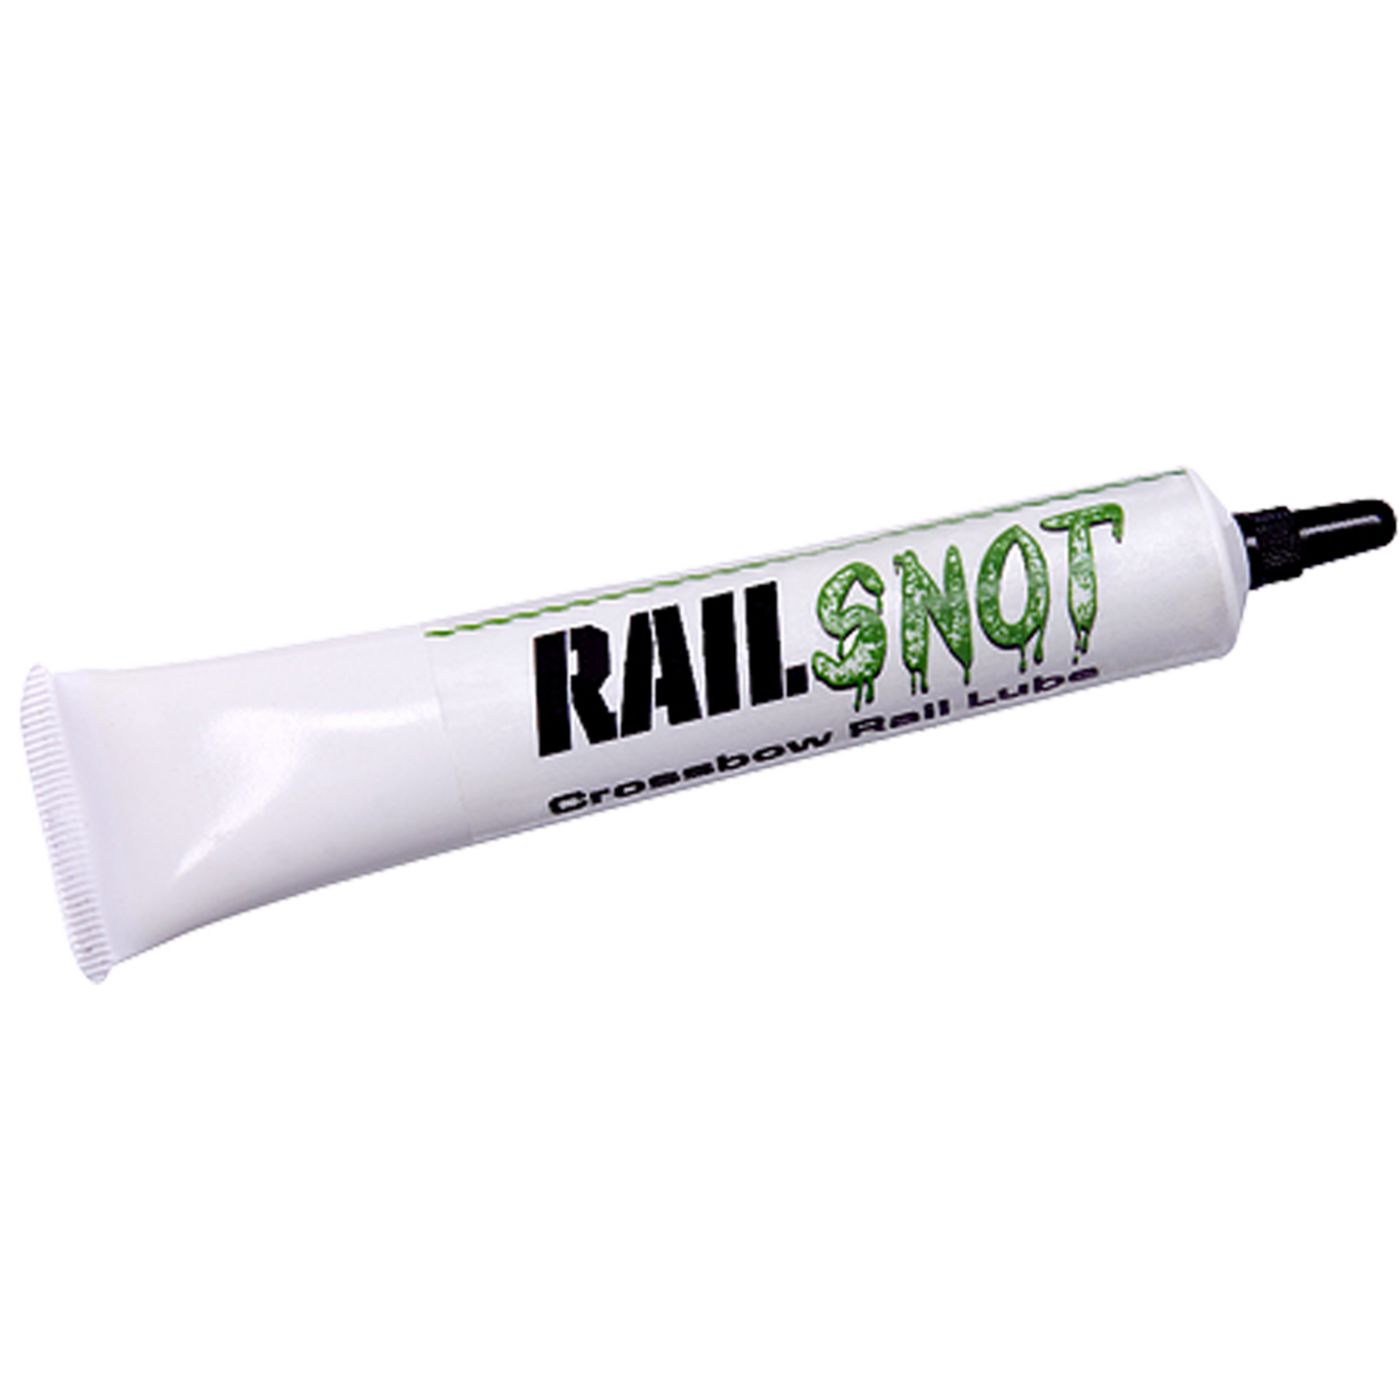 3006 Outdoors Rail Snot Crossbow Rail Lube